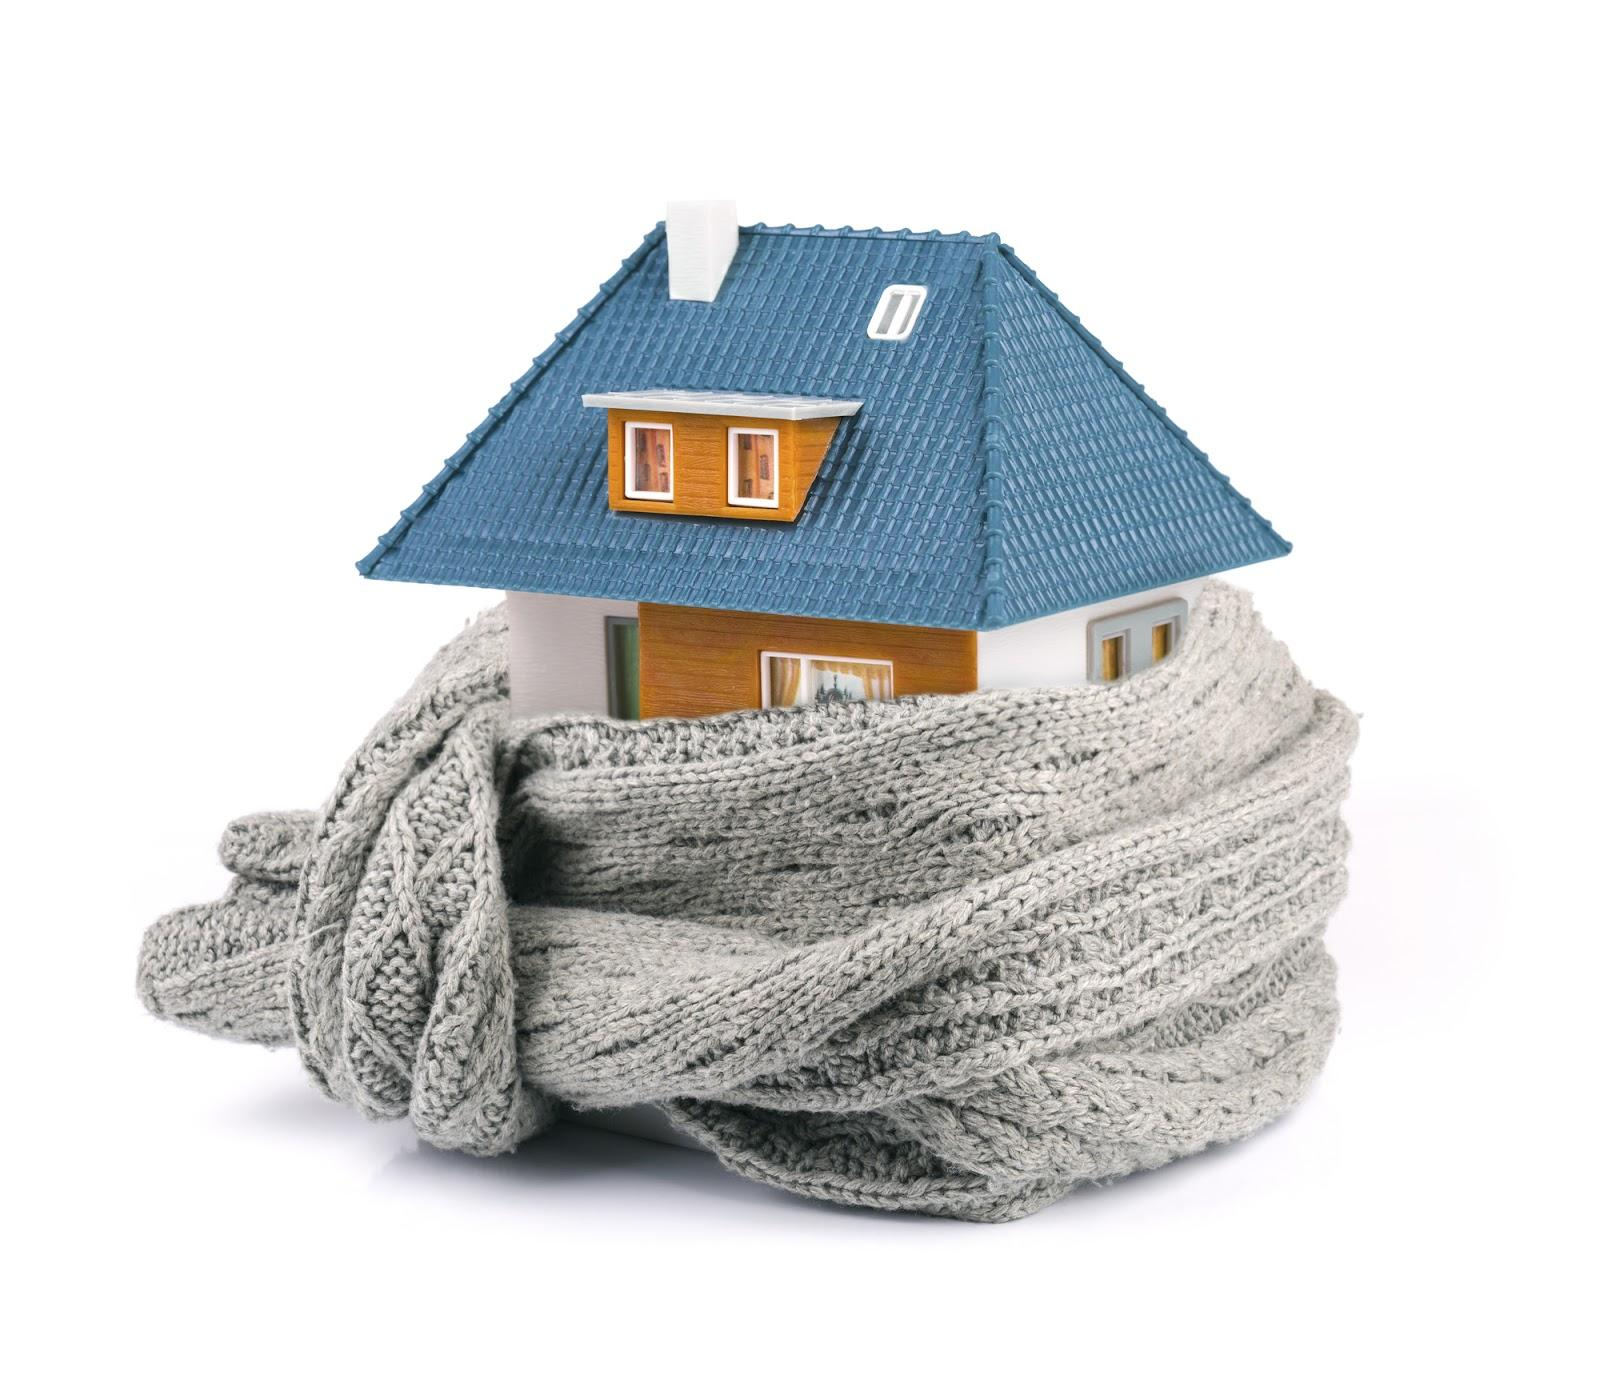 What Are the Benefits of Having Attic Insulation and Fans?